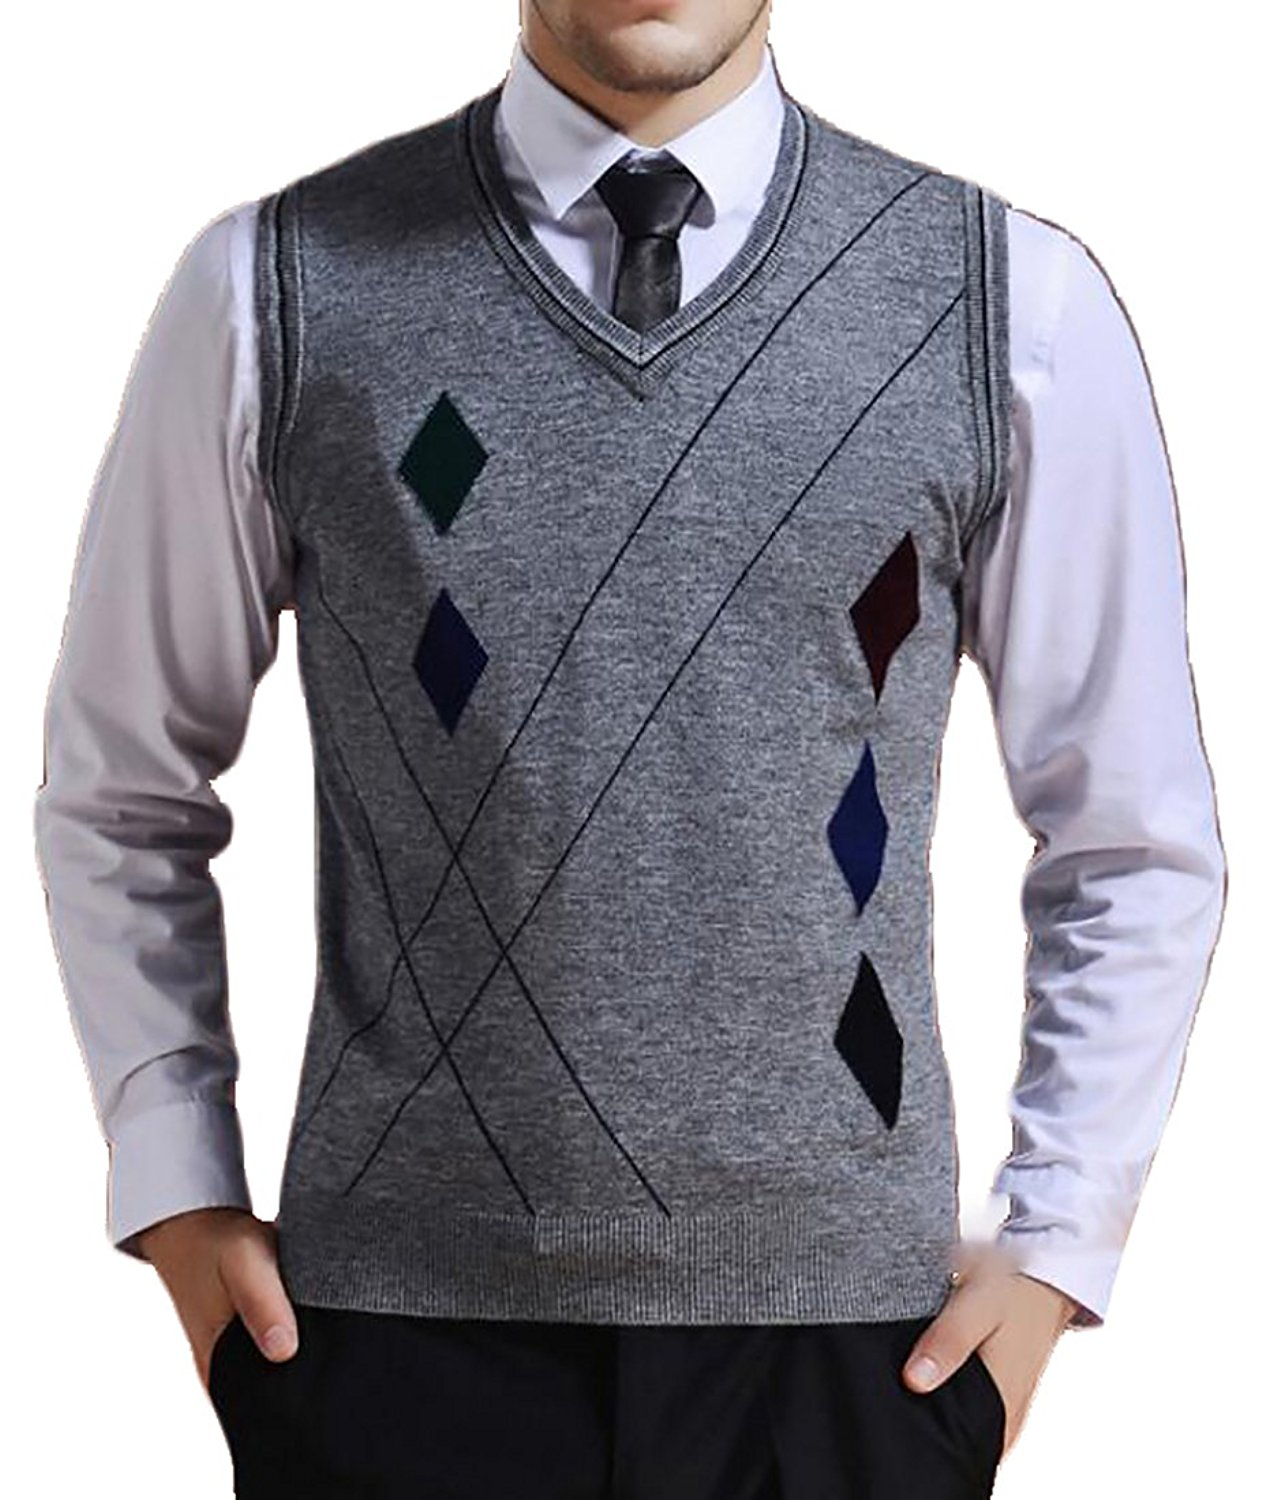 99f8f318f8e23 Get Quotations · ARRIVE GUIDE Mens Business Argyle Pattern Knitted V-Neck  Sweater Vest Gray XS